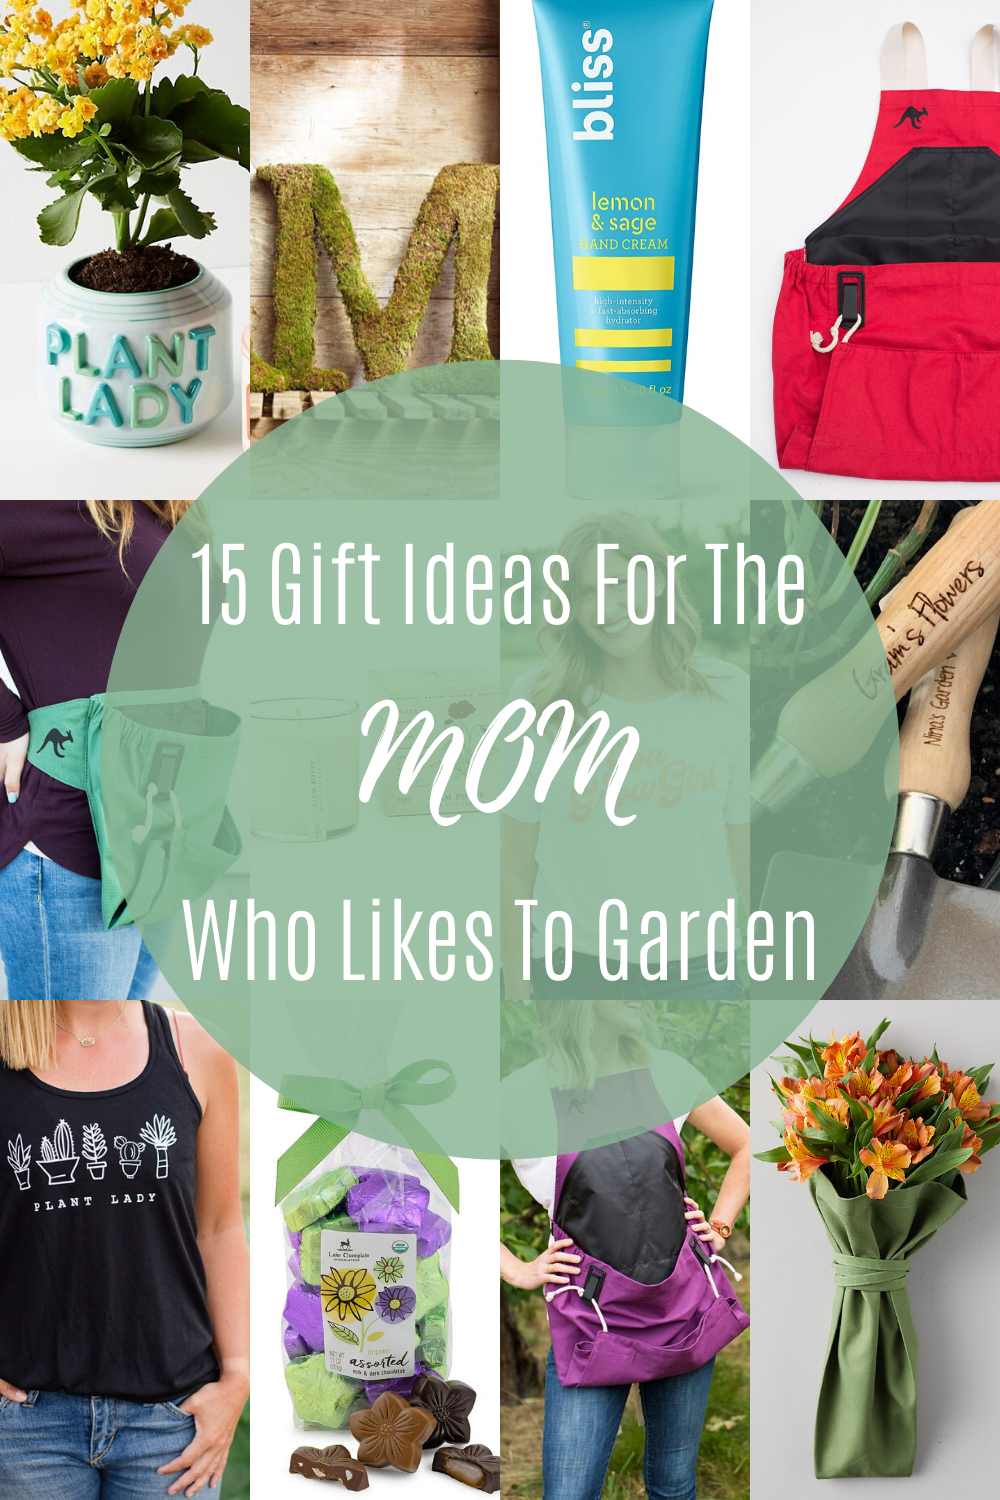 15 Gift Ideas For The Mom Who Likes To Garden Roo Apron In 2020 Gifts Garden Gifts 15 Gifts